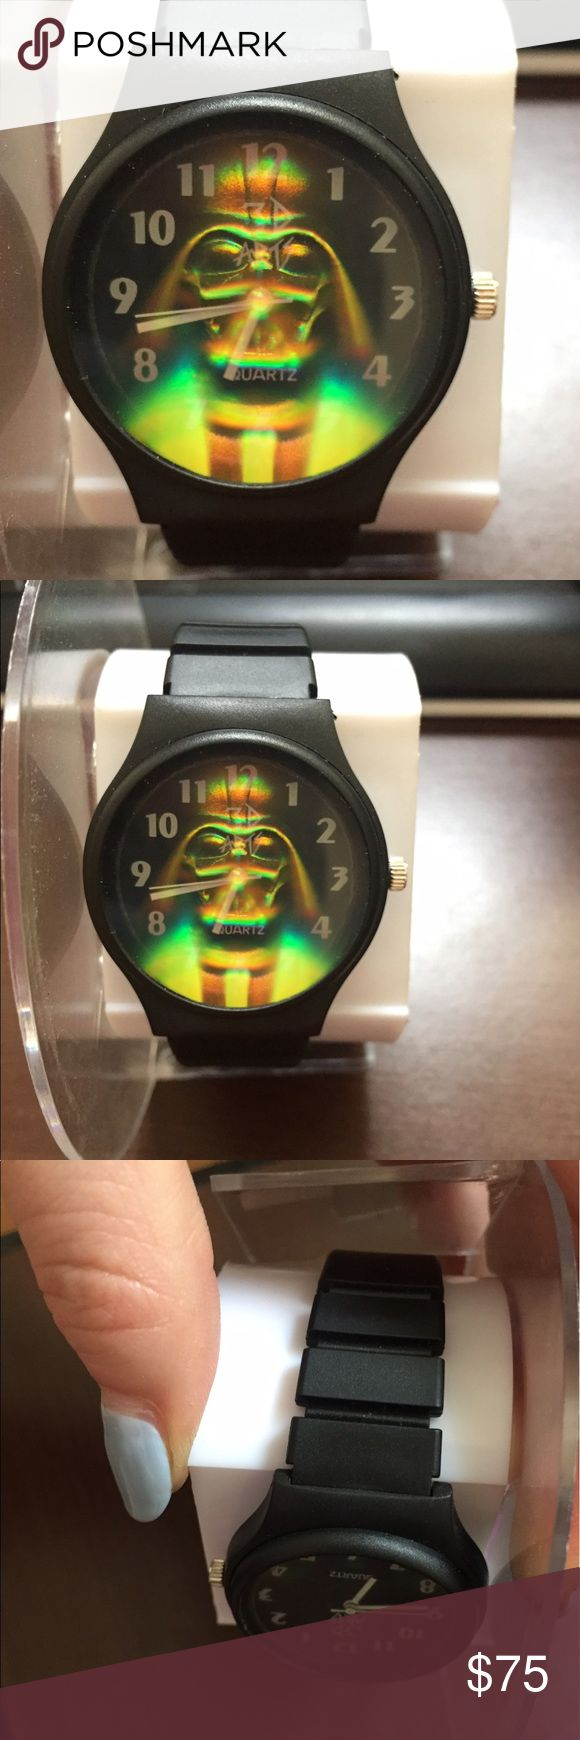 3-D Arts Star Wars Darth Vader Hologram Watch NIB 3-D Arts Star Wars Darth Vader Hologram Watch. 1994 Lucas Film Ltd. It's new in package. Watch is in mint condition. There is damage to the case (see pics) comes with original paper work. Battery died from sitting in the box. New never worn only opened to show condition of watch is mint. lucas Films Lts  Accessories Watches